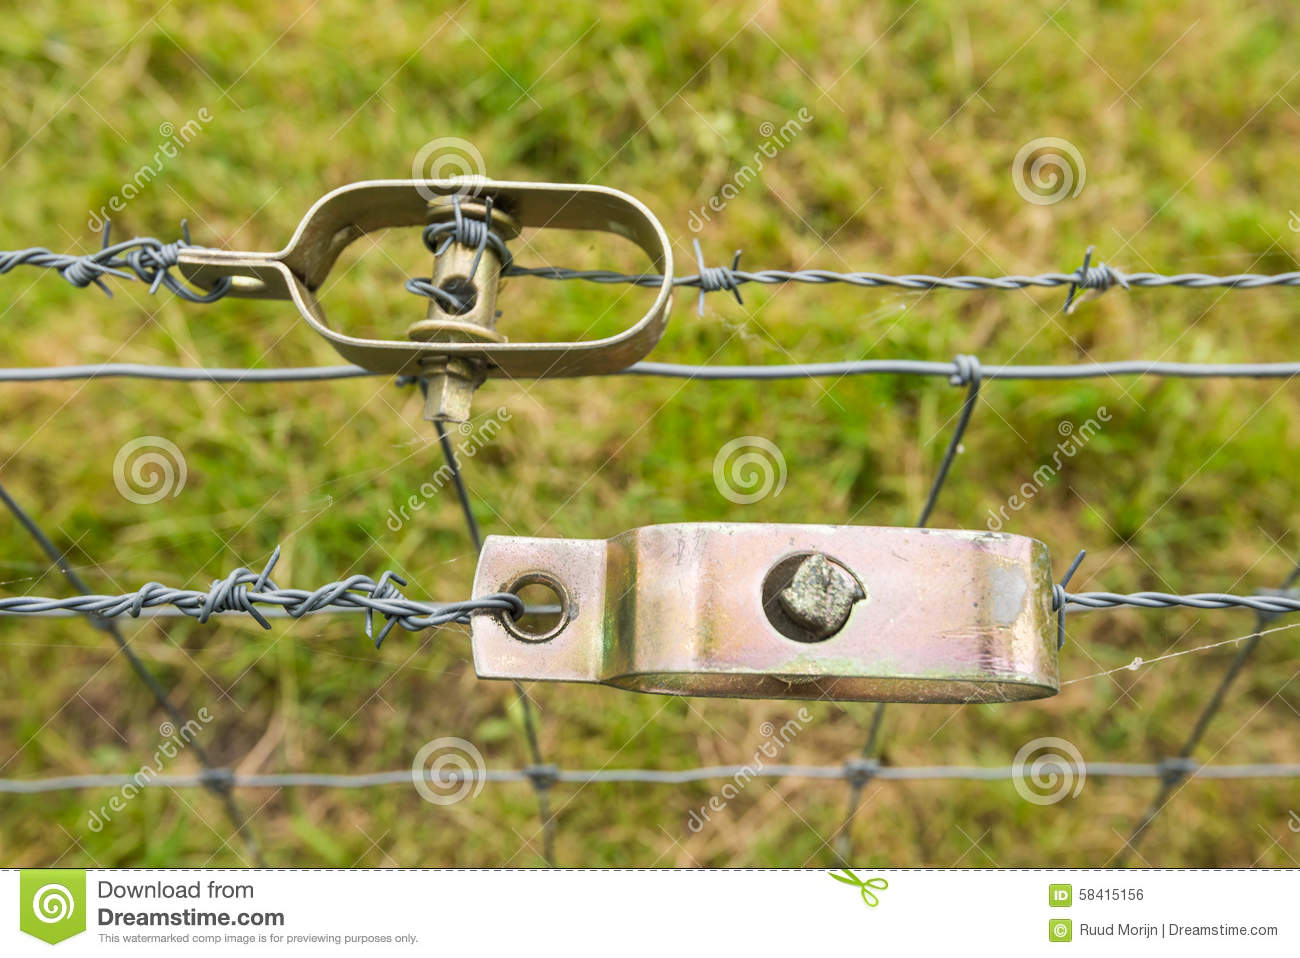 Picture of: Two Wire Tensioners From Close Stock Photo Image Of Detailed Gauze 58415156